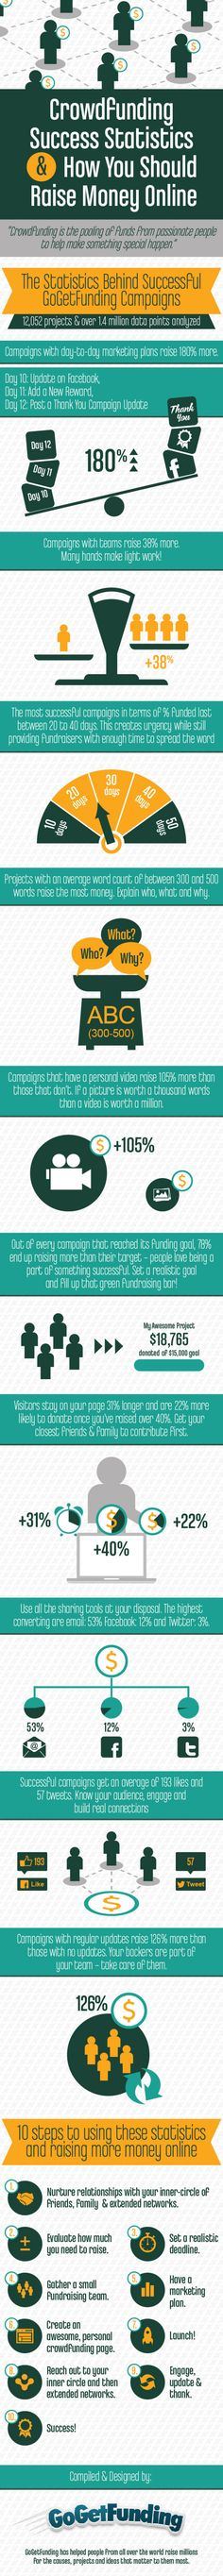 #Crowdfunding Success Statistics {Infographic}